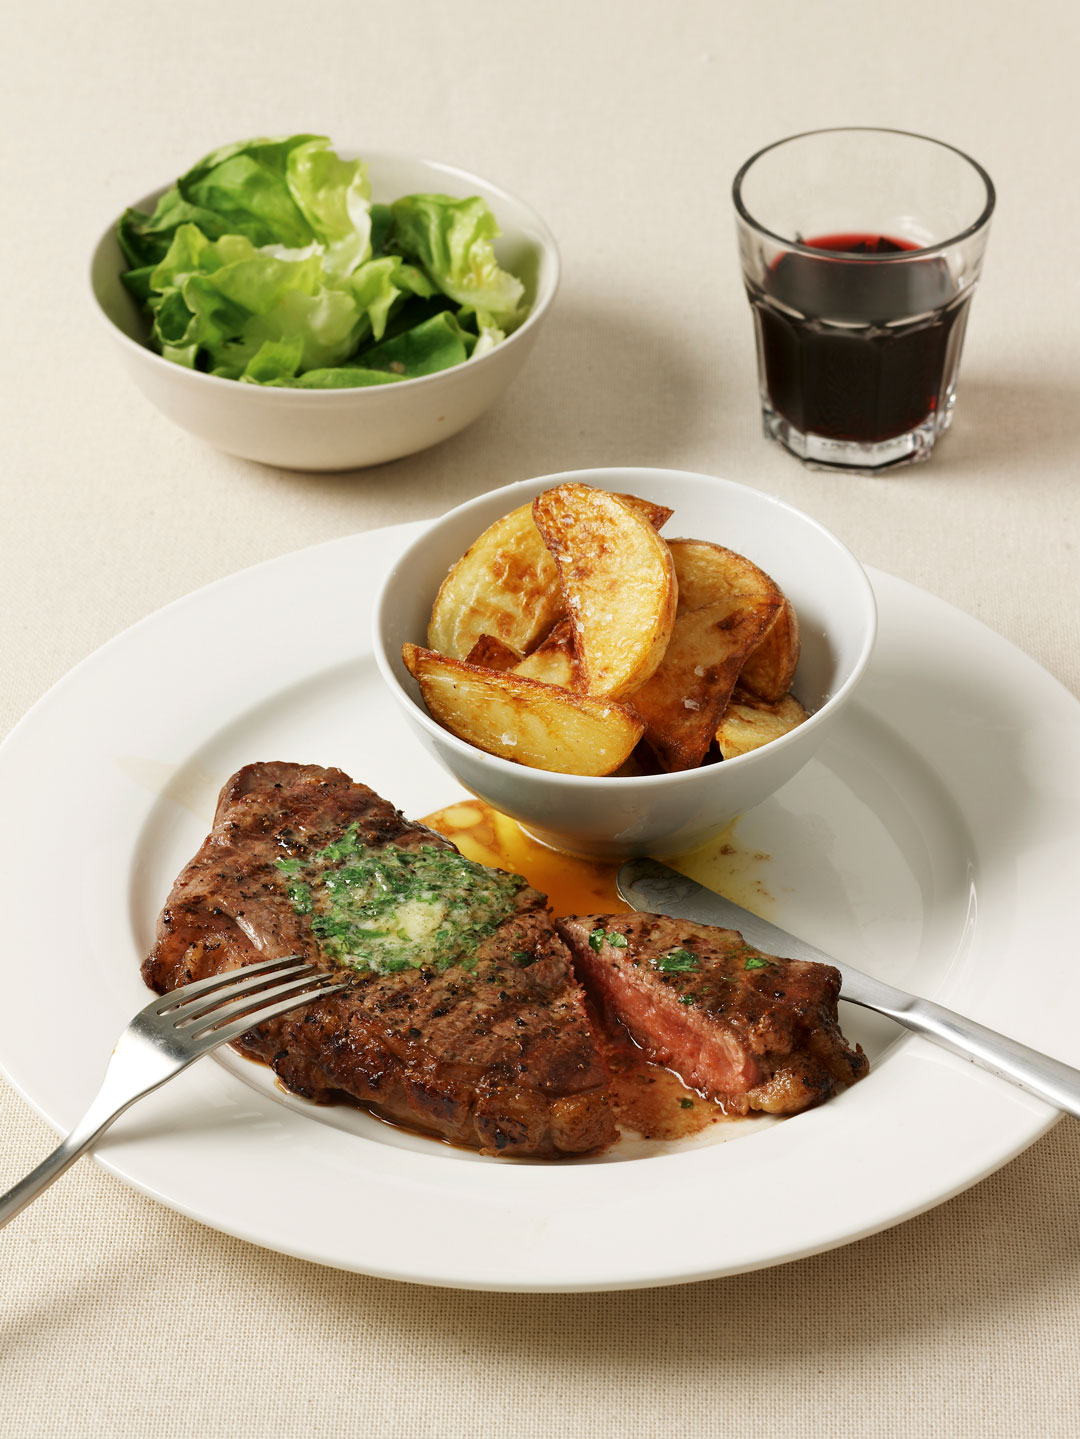 Chargilled steak